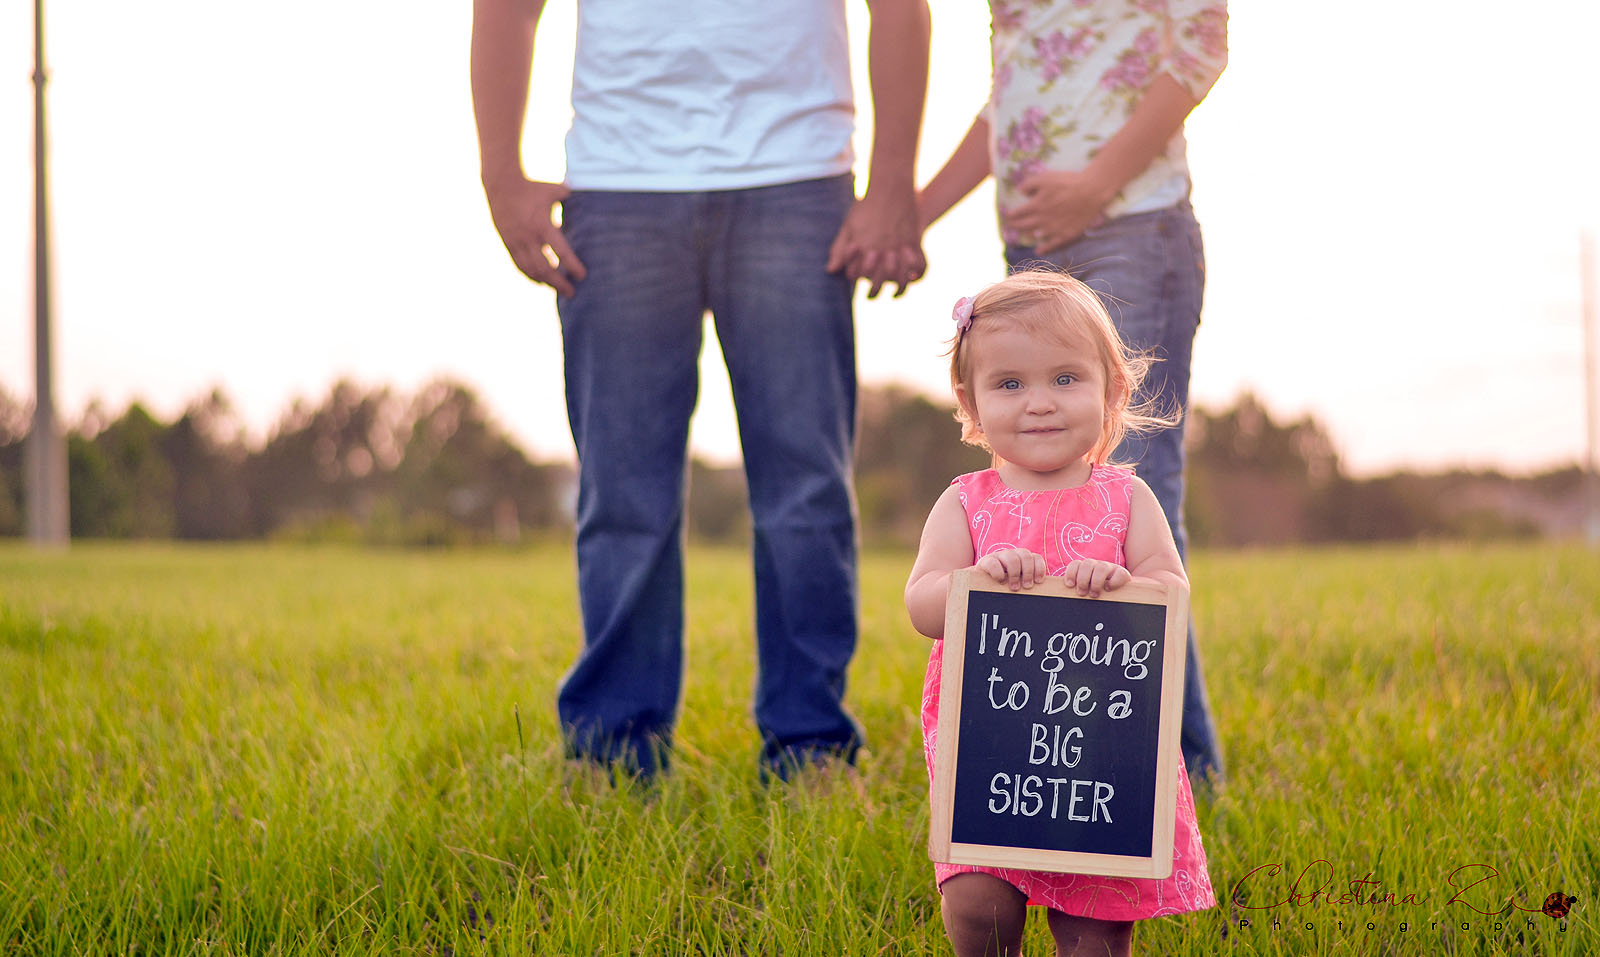 Pregnancy Announcement Photo | Christina Z Photography - Orlando FL Photographer